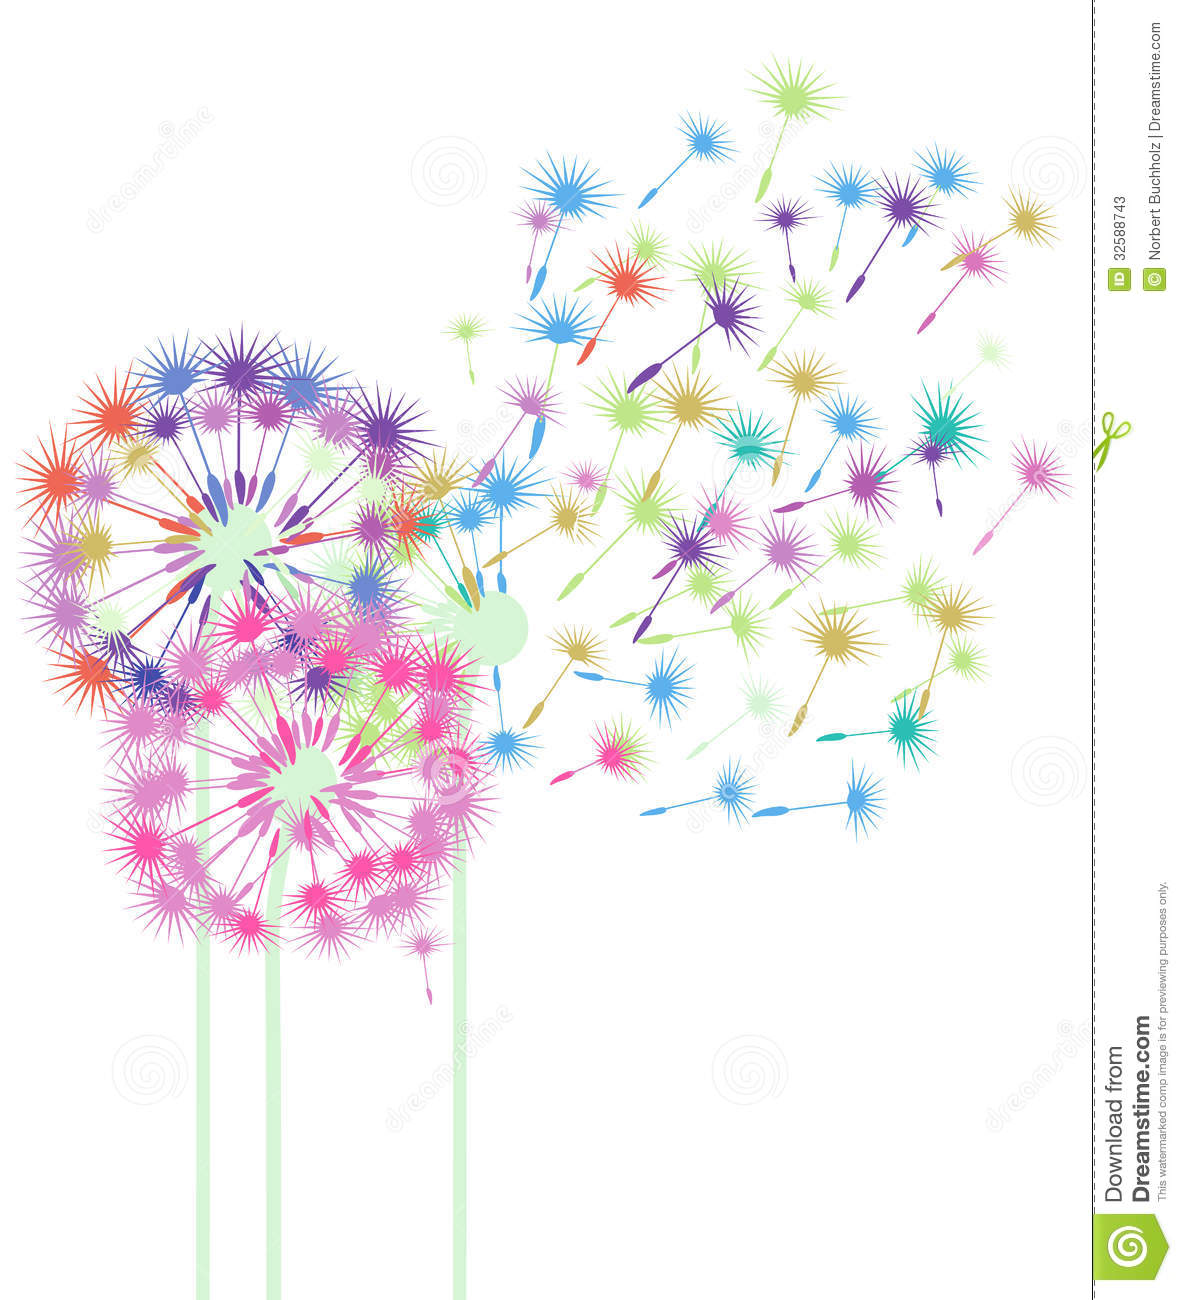 Fall Colored Background Wallpaper Colorful Dandelions In The Wind Stock Vector